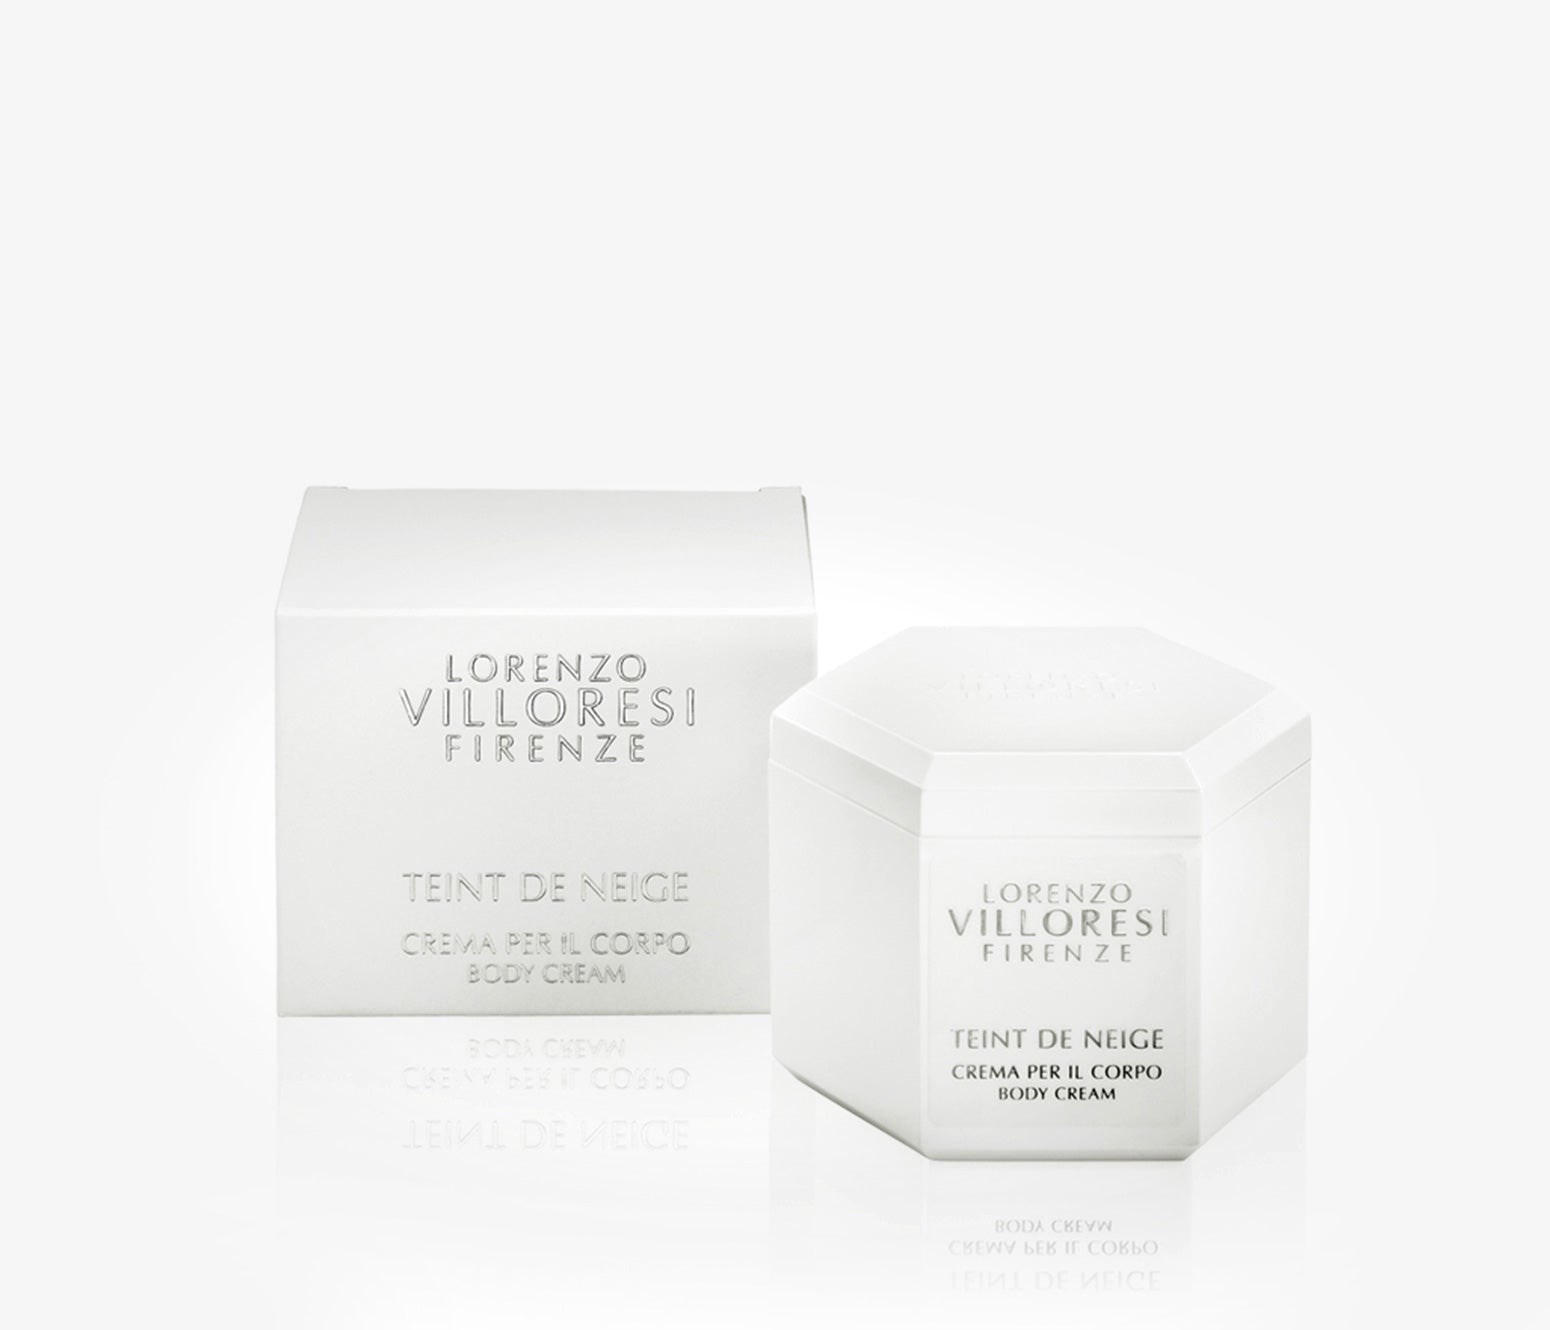 Lorenzo Villoresi - Teint de Neige Body Cream - 200ml - TDC2695 - Product Image - Body Cream - Les Senteurs